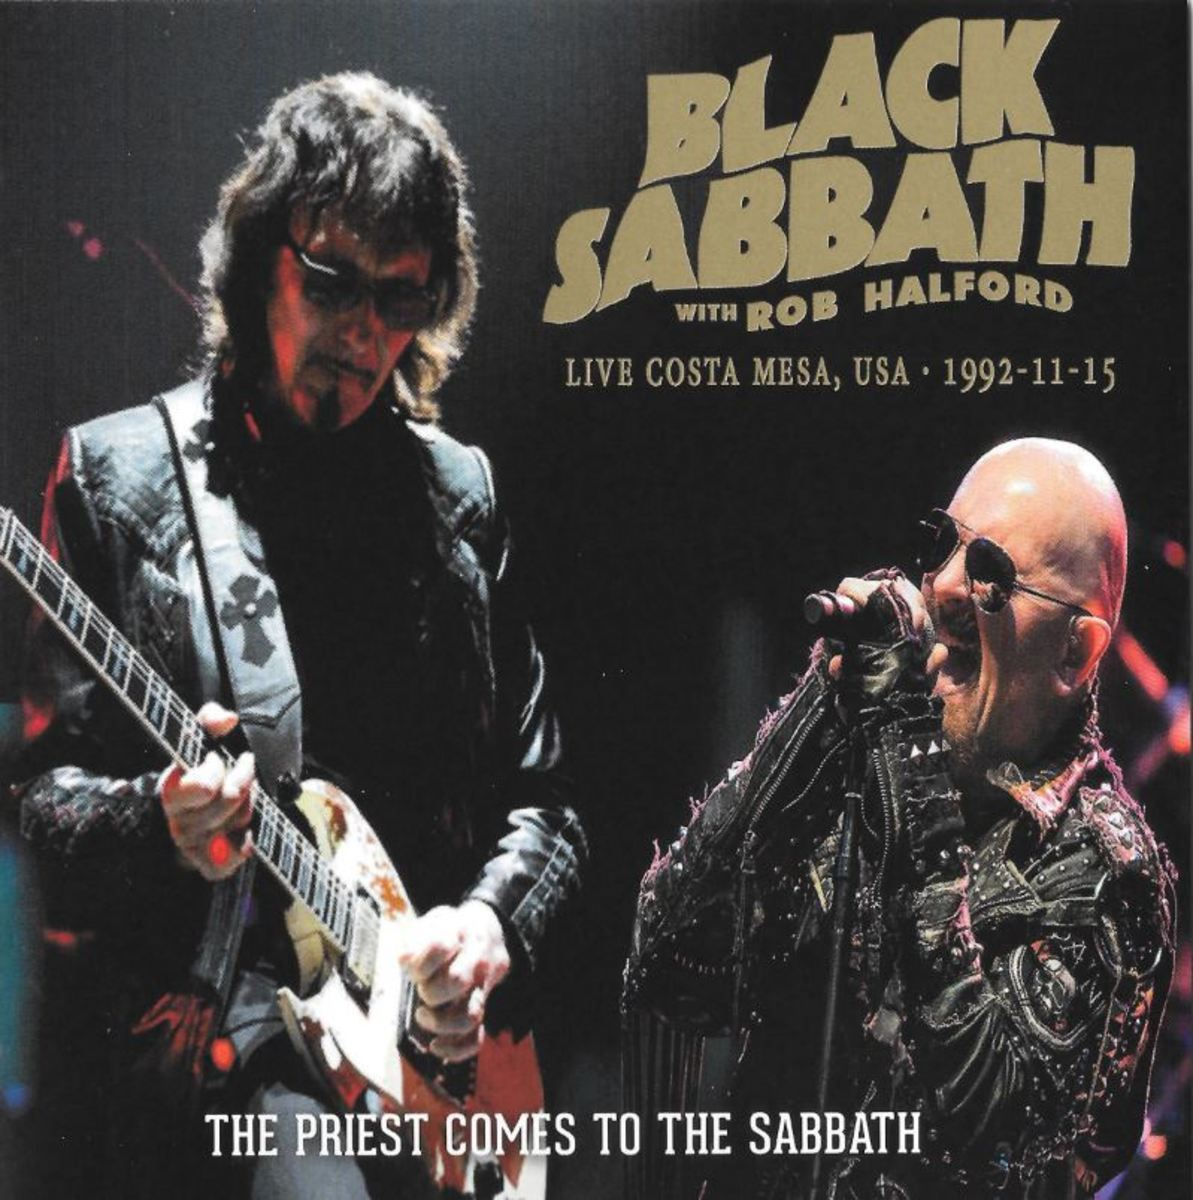 The Night Rob Halford Saved Black Sabbath